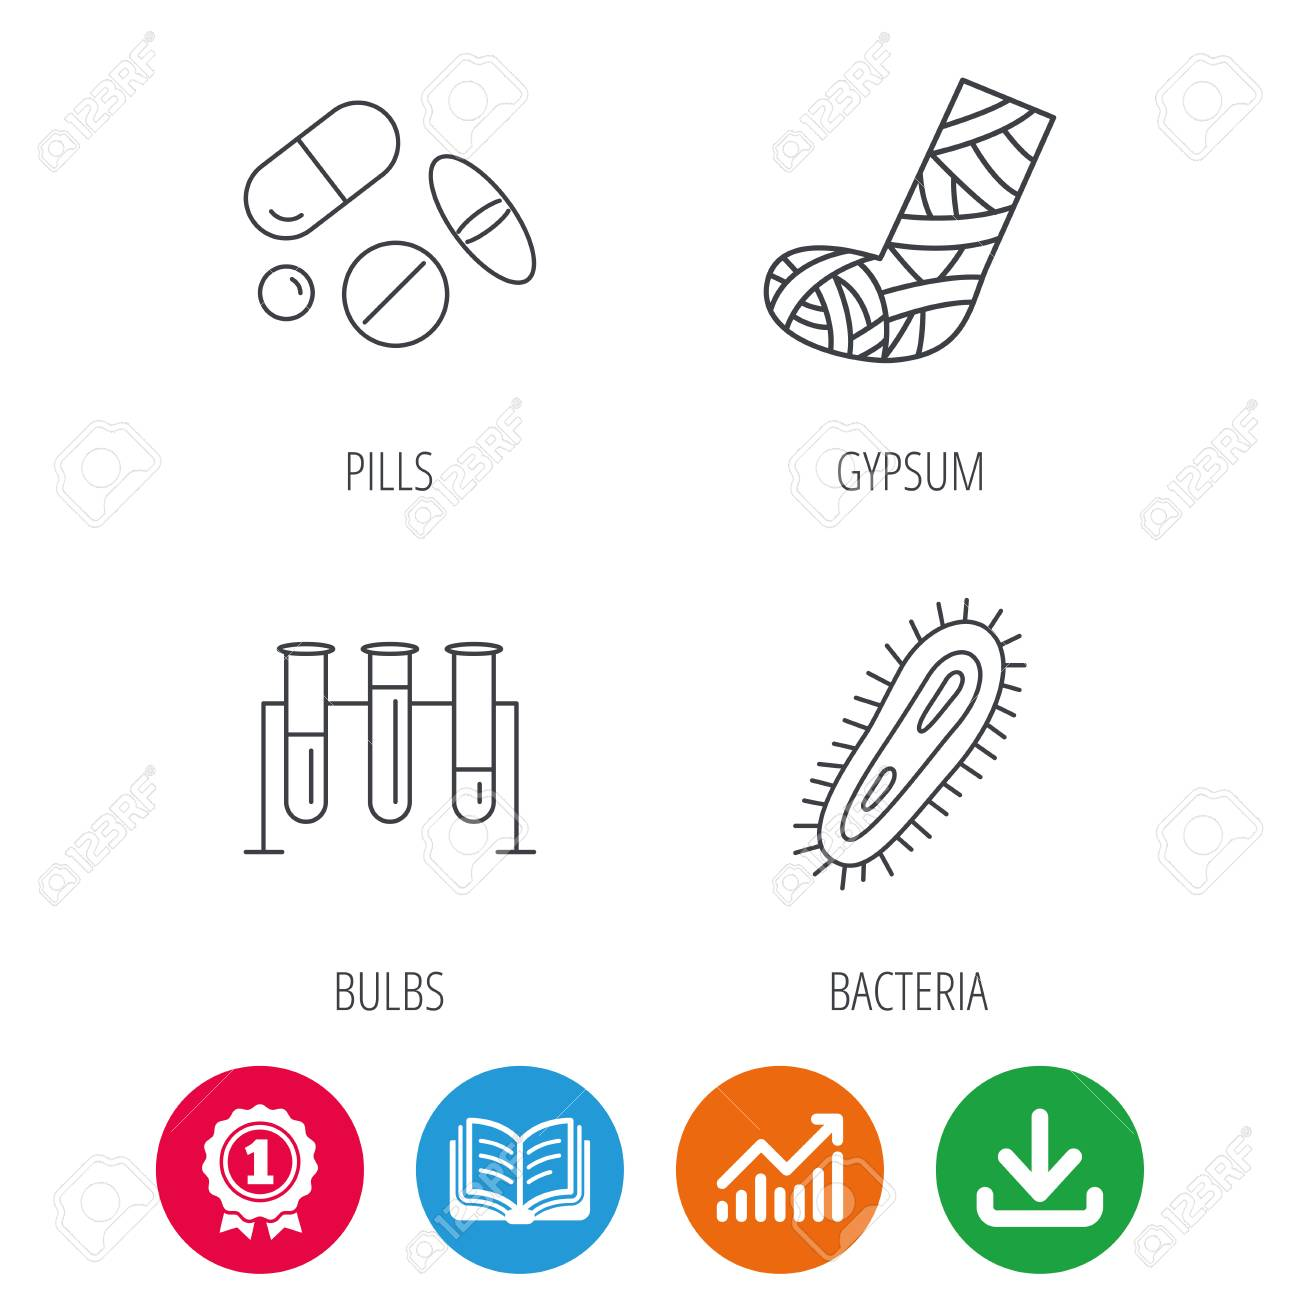 Broken foot bacteria and medical pills icons lab bulbs linear broken foot bacteria and medical pills icons lab bulbs linear sign award medal nvjuhfo Gallery